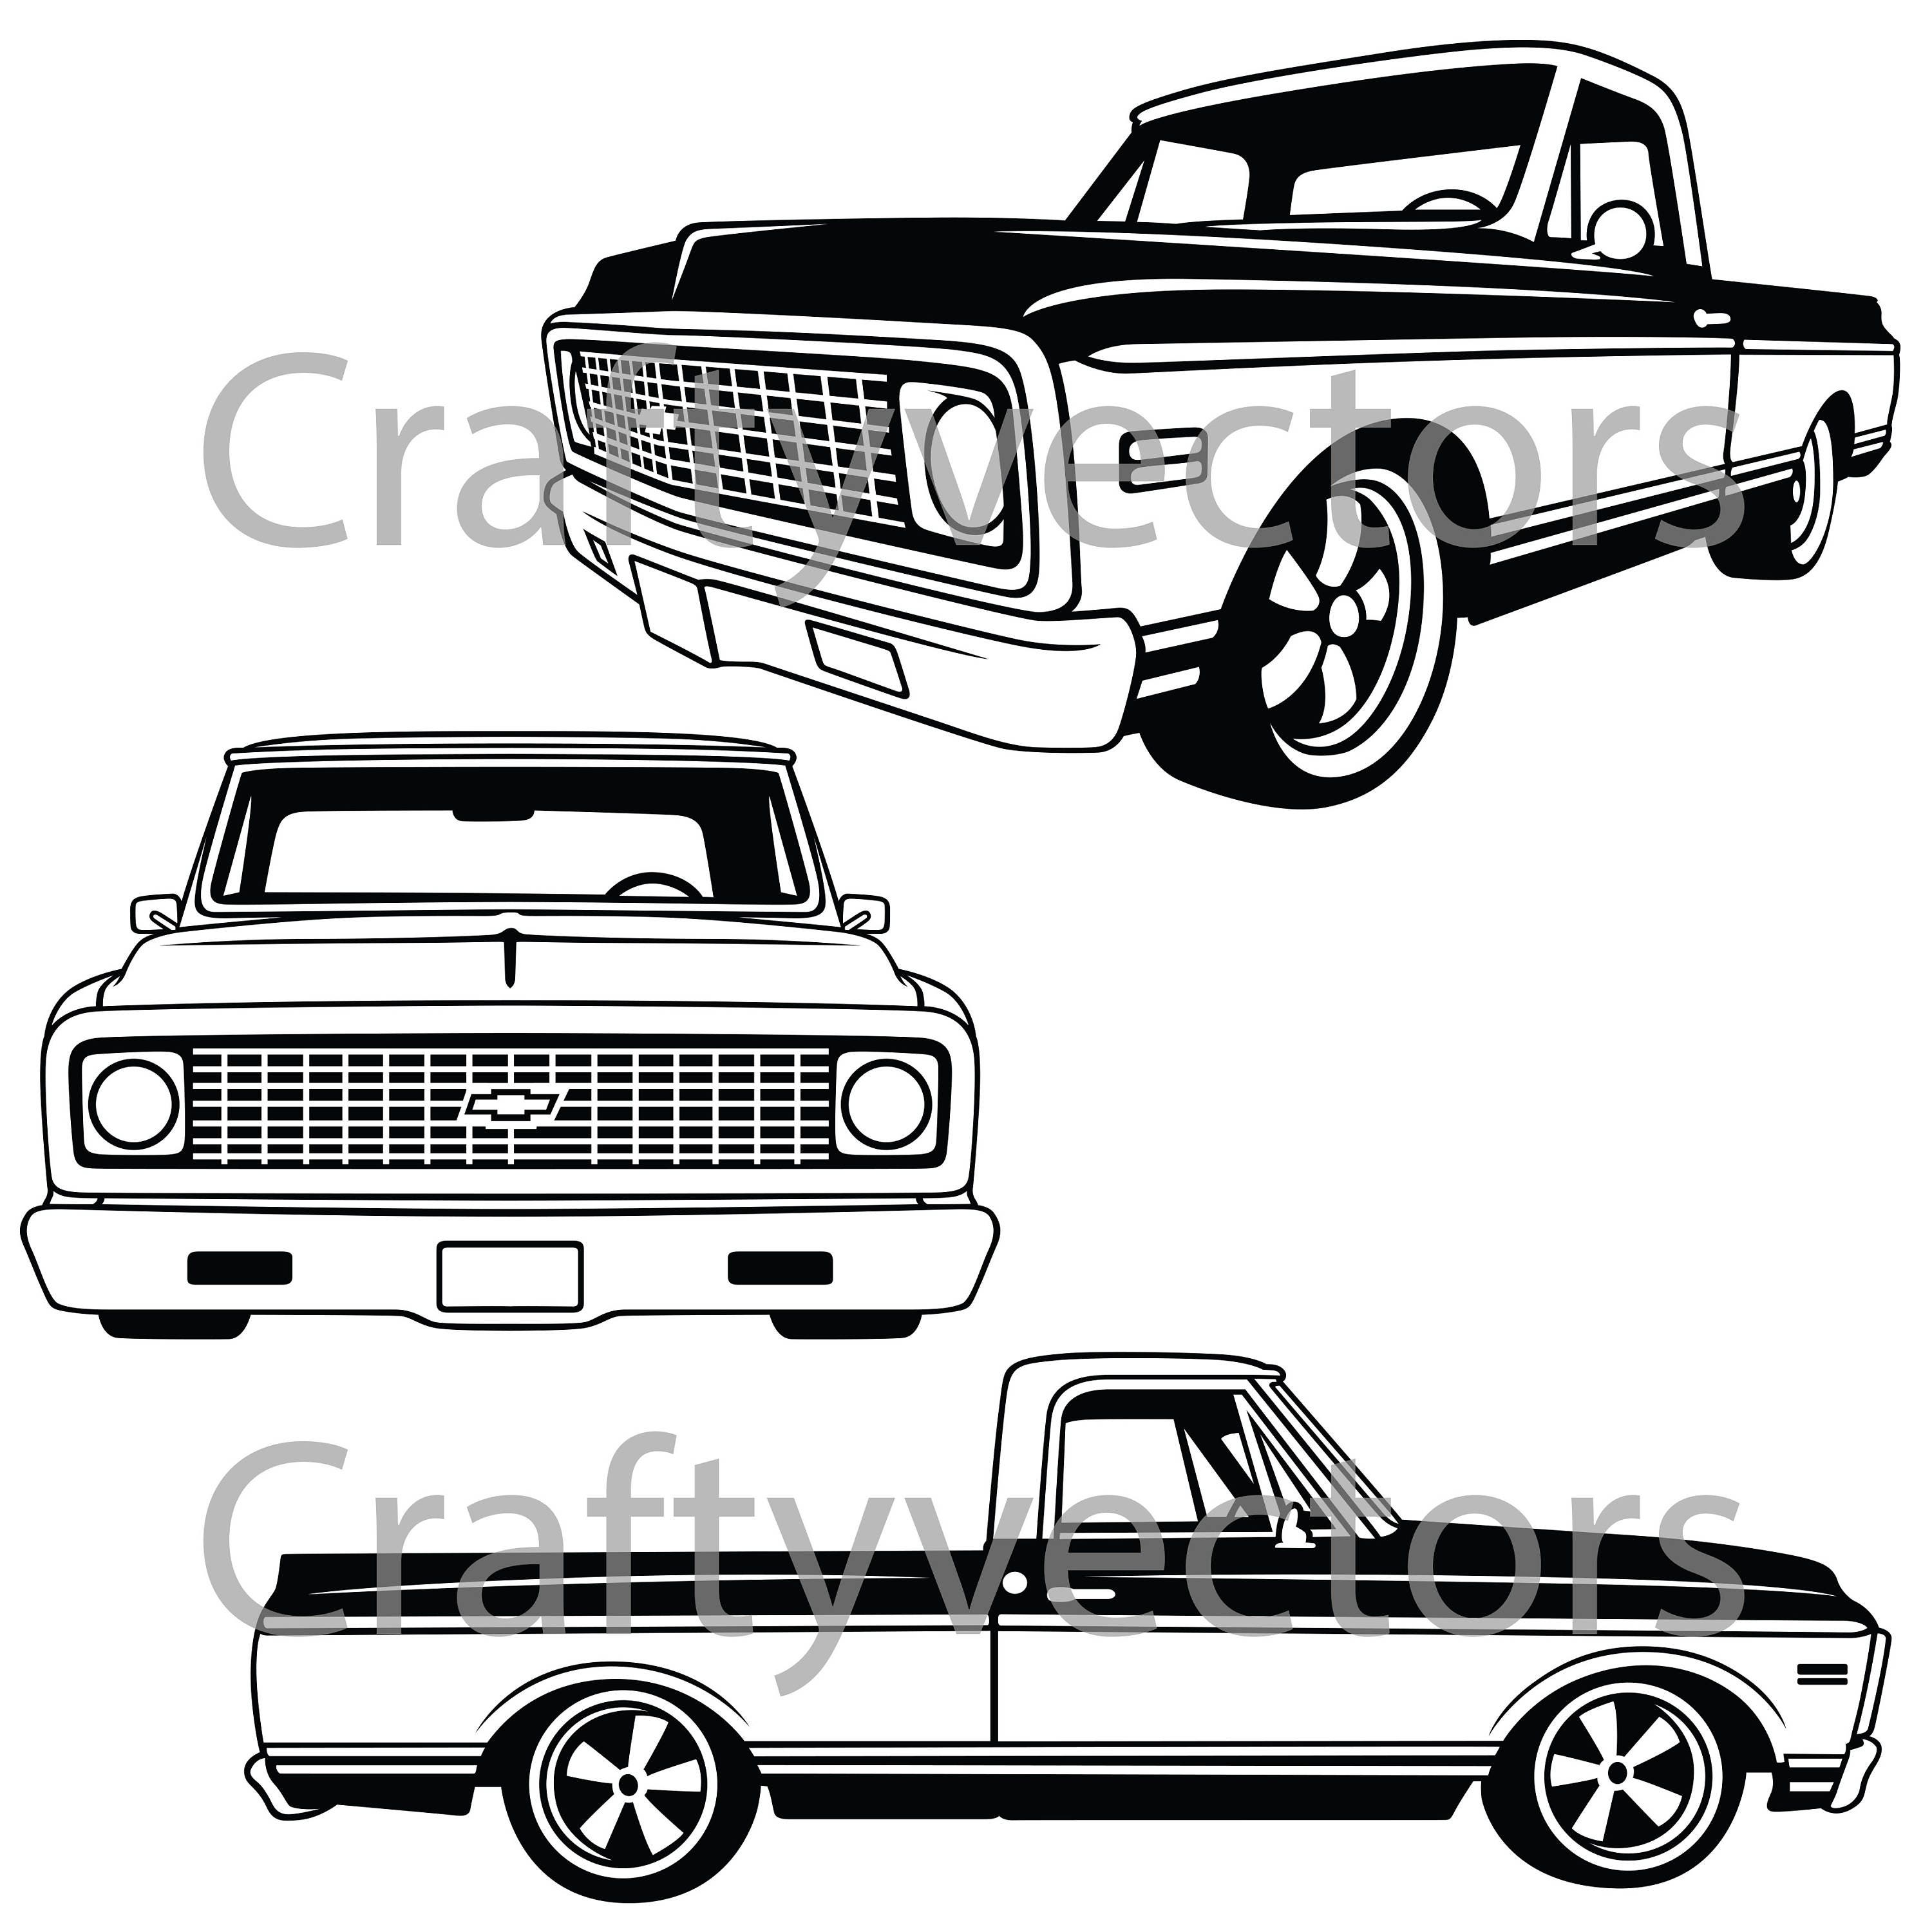 chevy silverado decal square body outline picsbud OBS Chevy Z71 chevrolet truck to vector file 3000x3000 chevy silverado decal square body outline